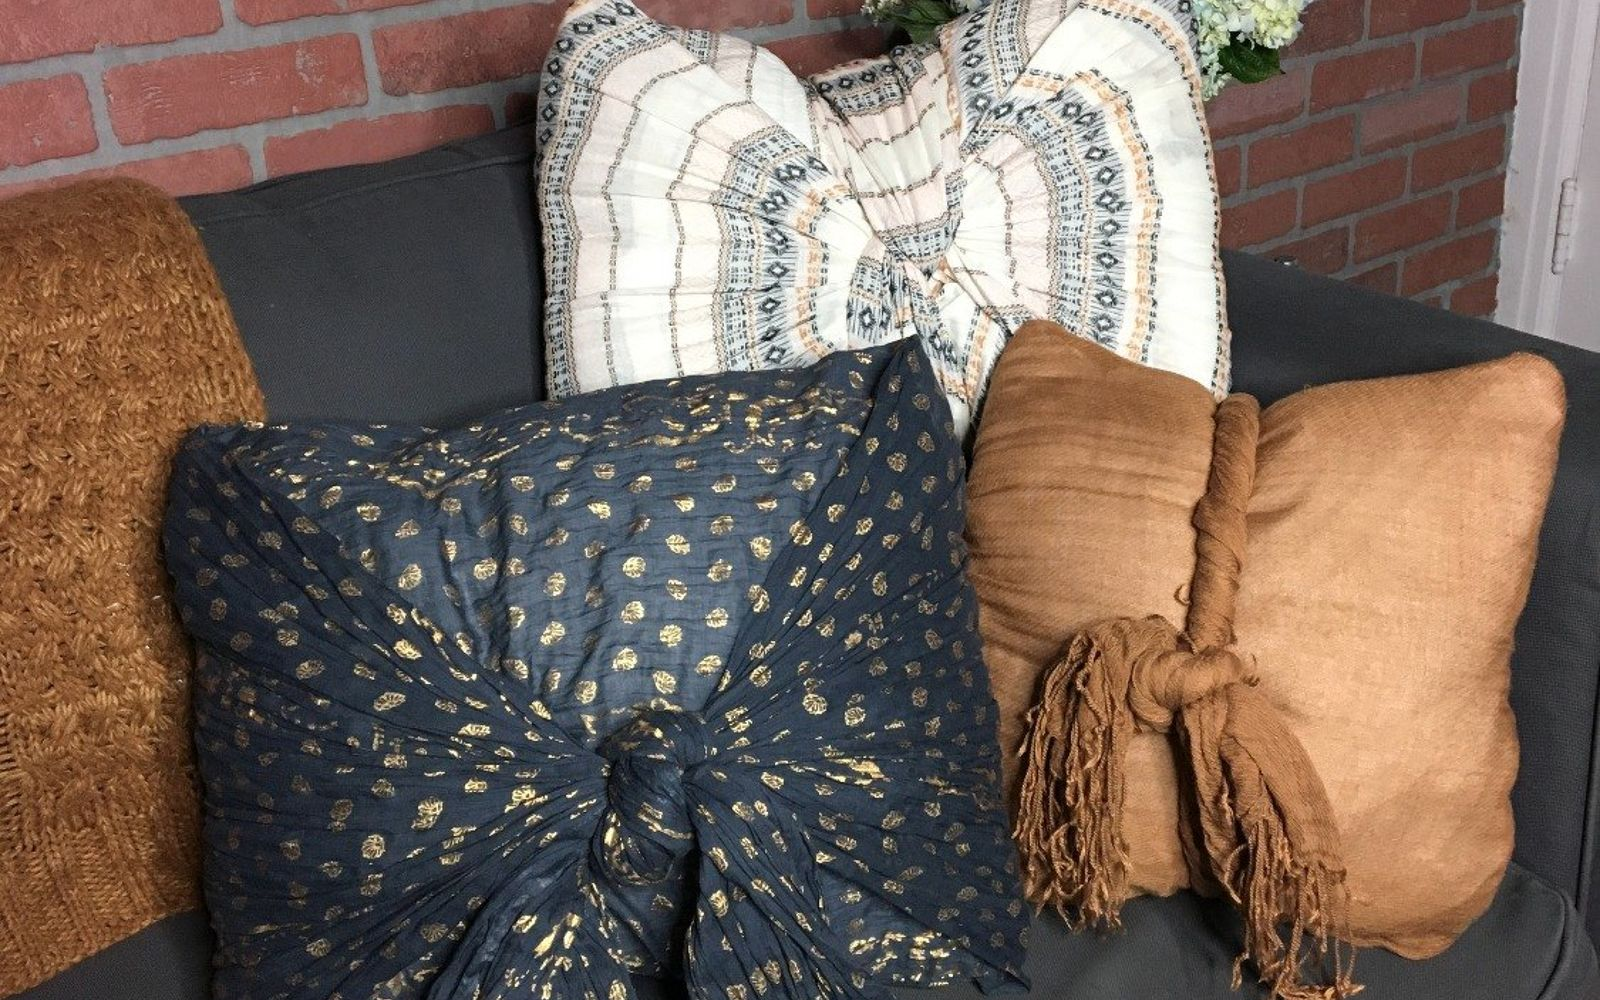 s 3 easy ways to upgrade your pillows to a high end look, Step 5 Decorate any bed or couch